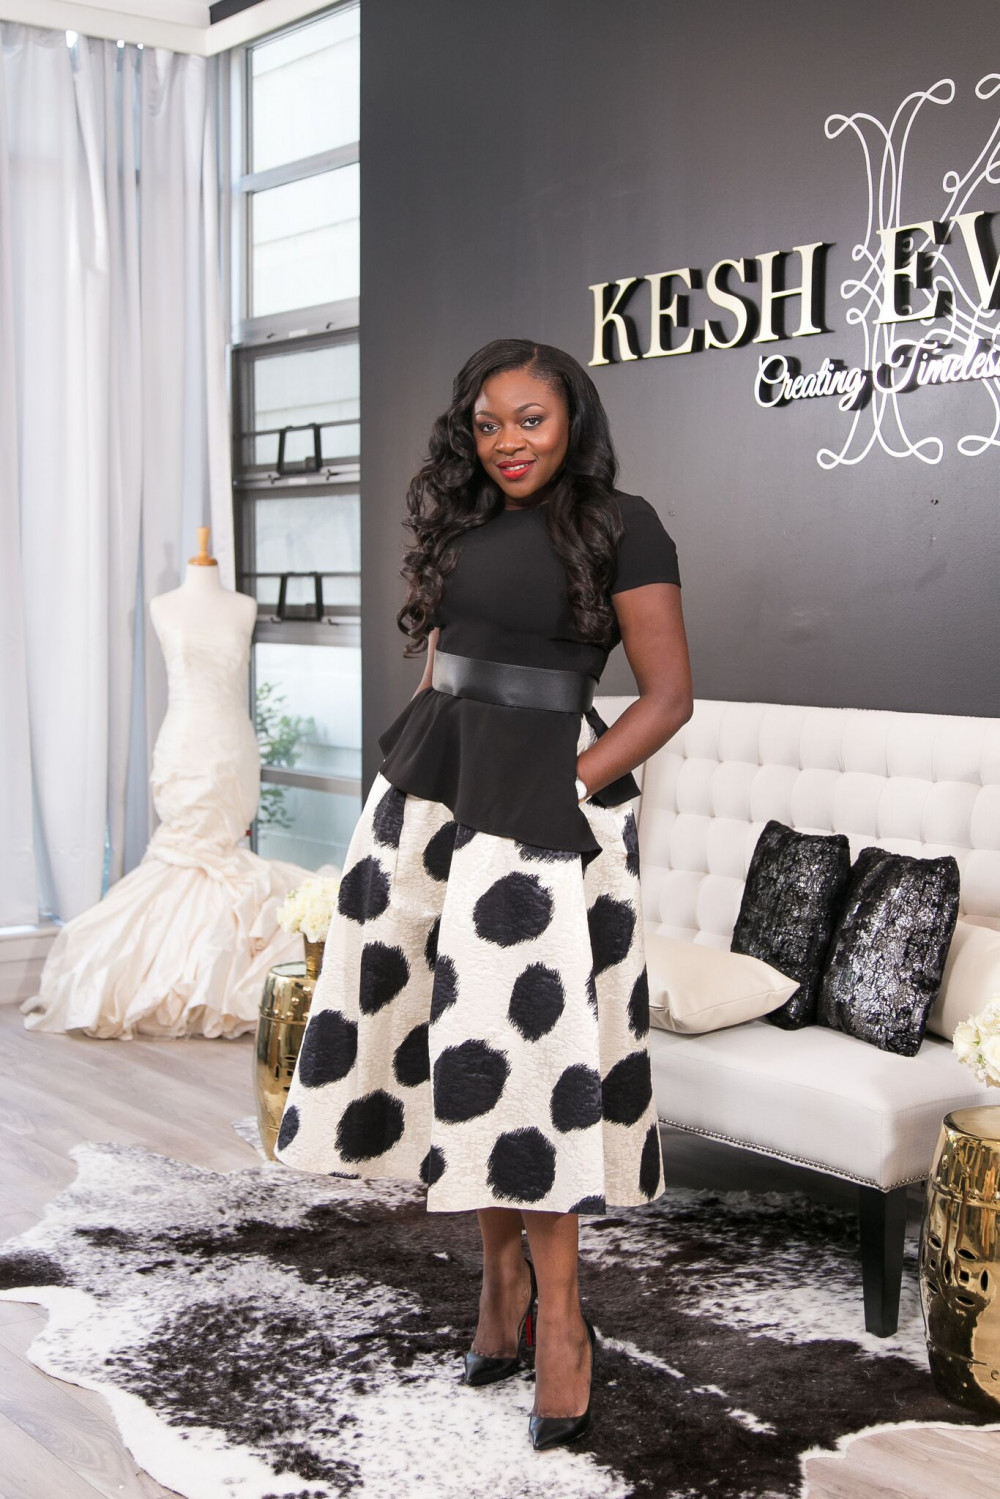 akeshi-akinseye_kesh-events_the-art-of-floral-and-event-design-1